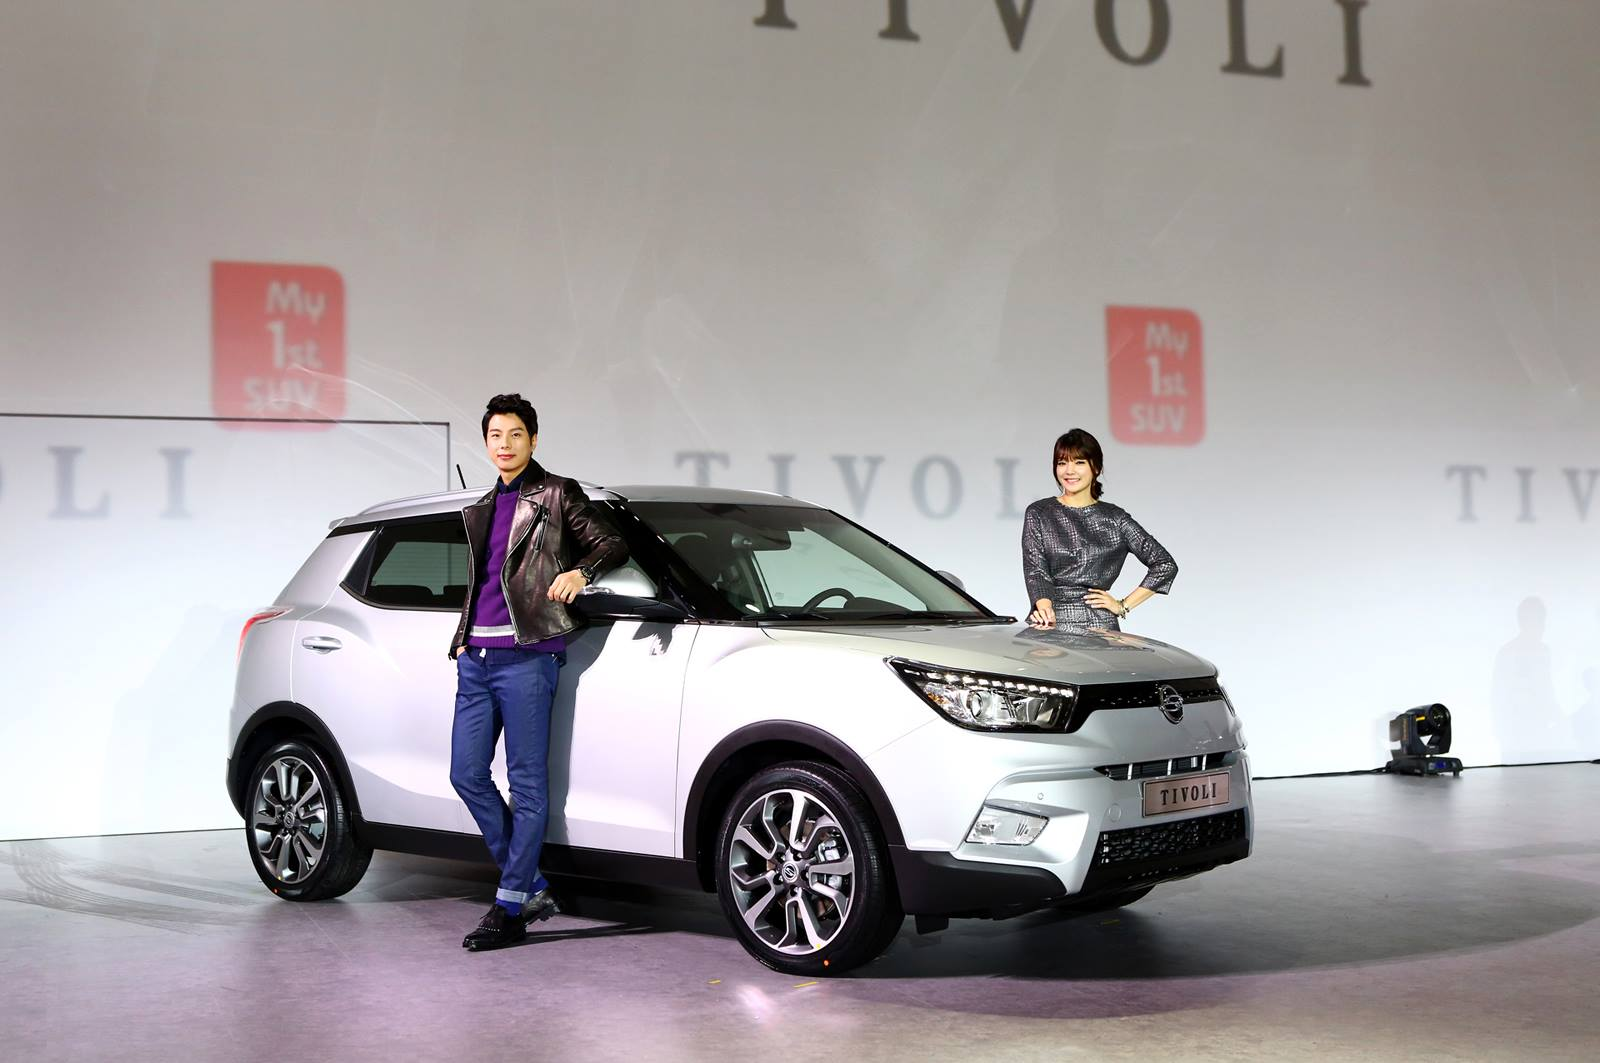 The Tivoli was designed to appeal to younger customers, sporting relatively roomy cargo space and a cheaper price tag compared to other same-segment rivals. (image: Ssangyong Motor)